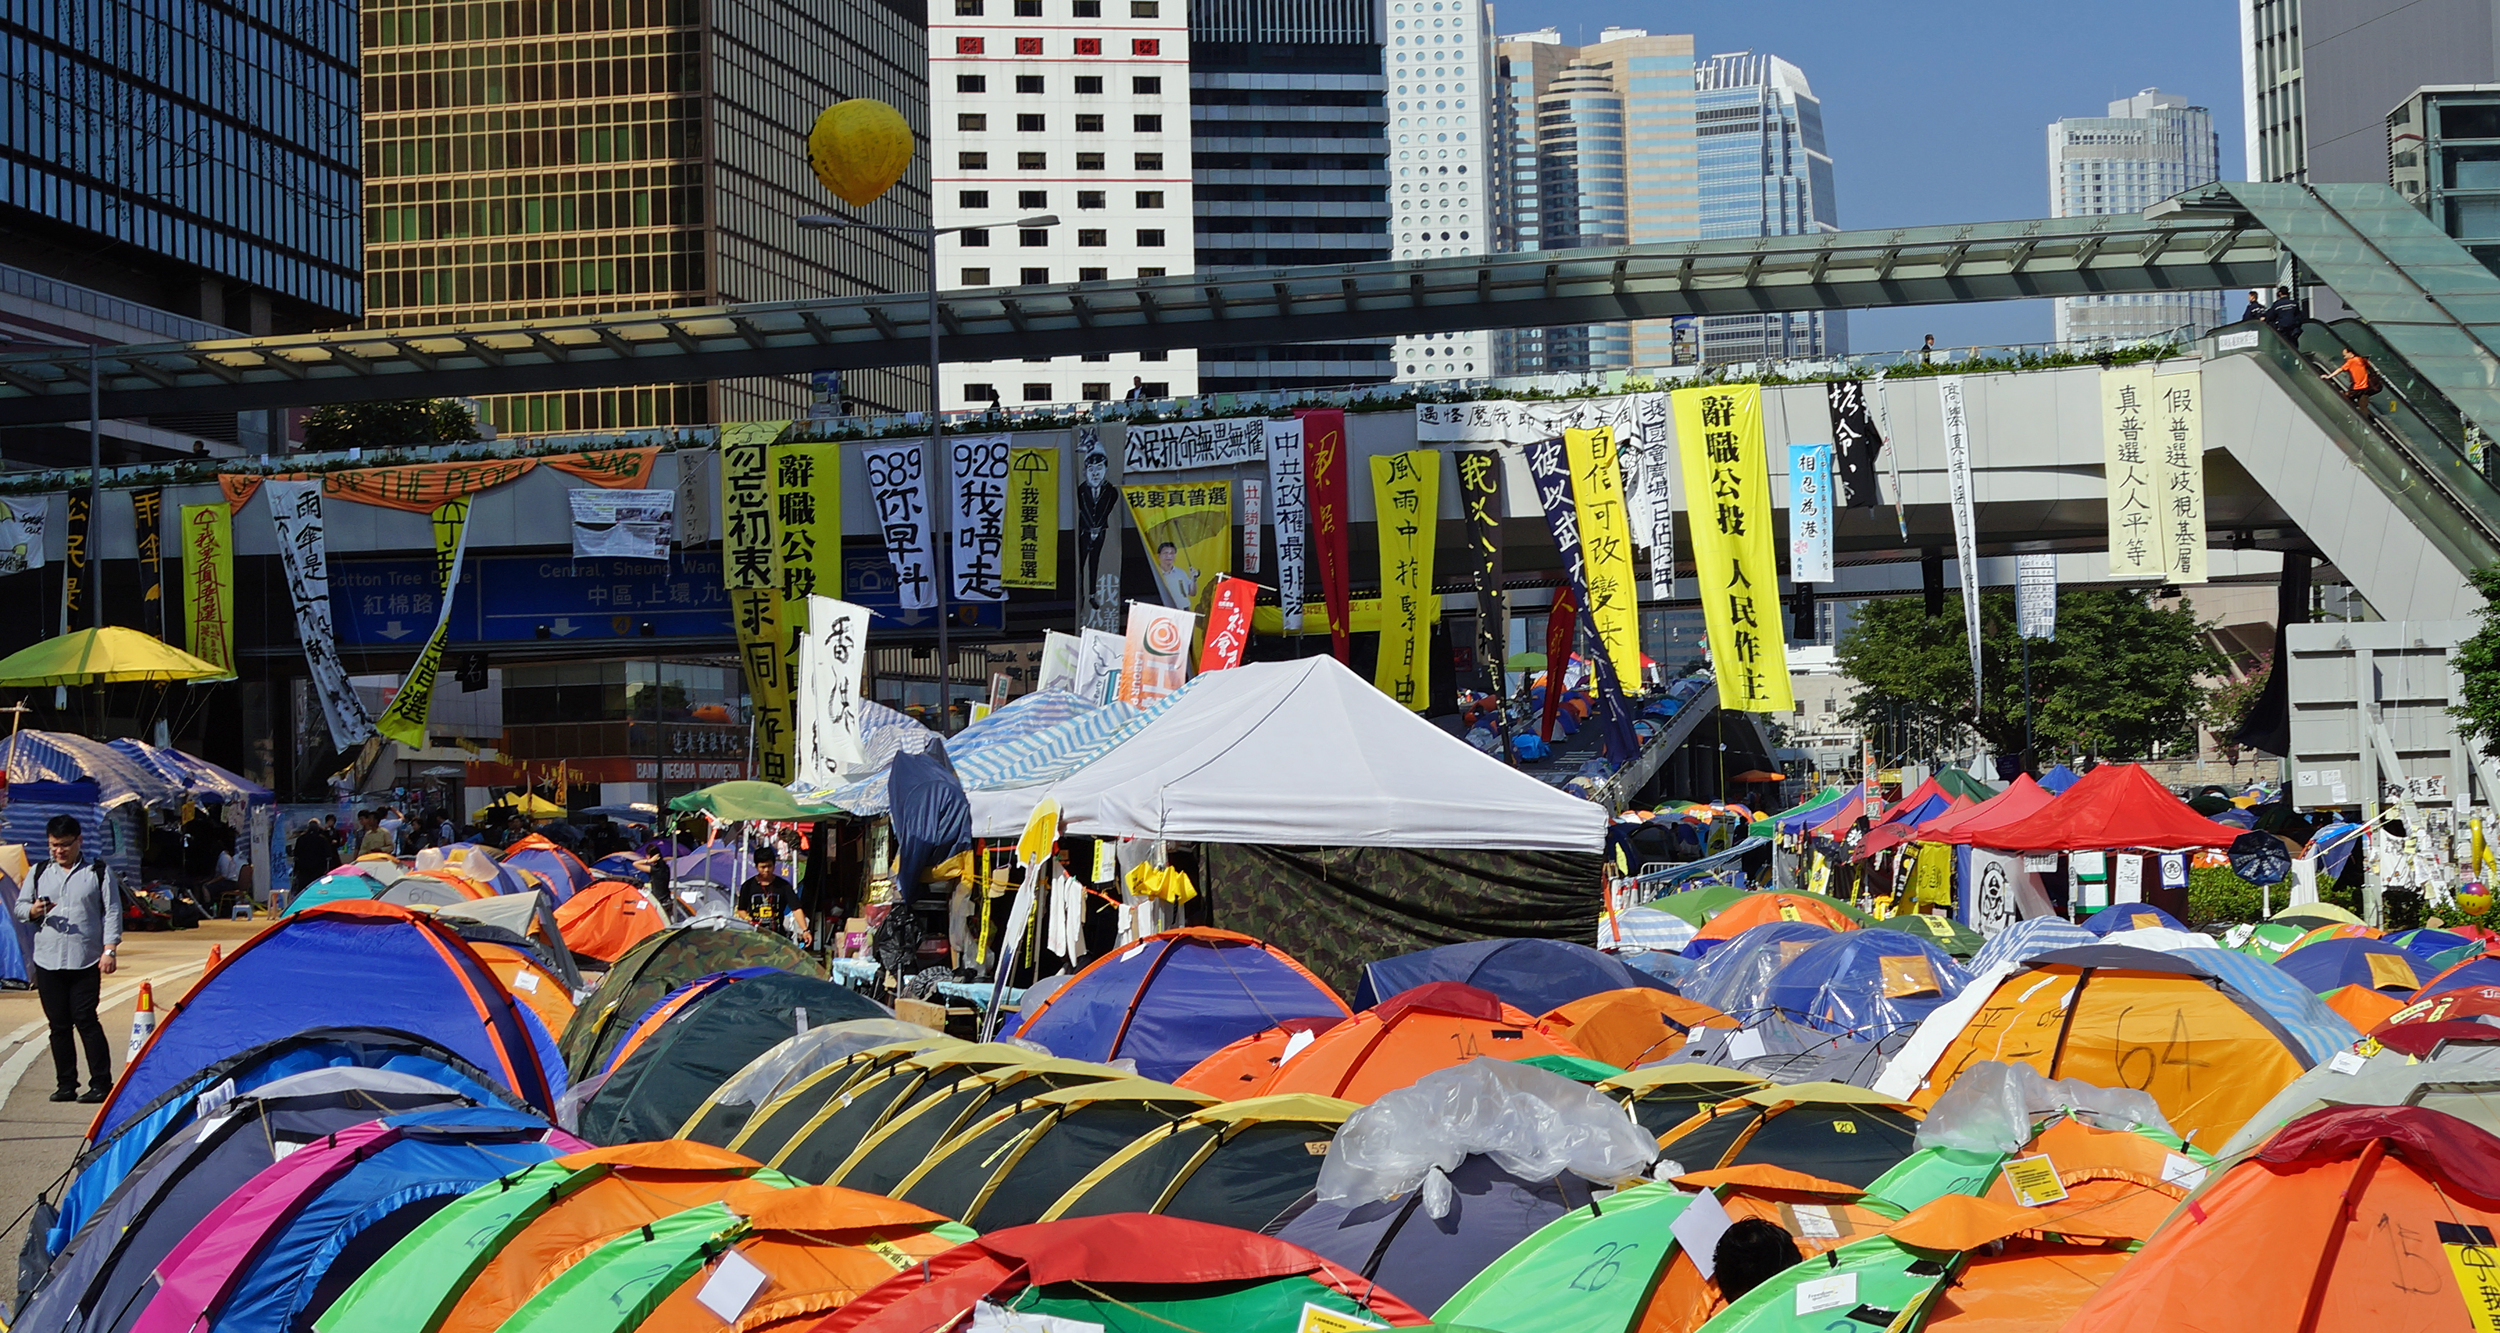 The bizarre and somewhat illegal occupy zone at Admiralty